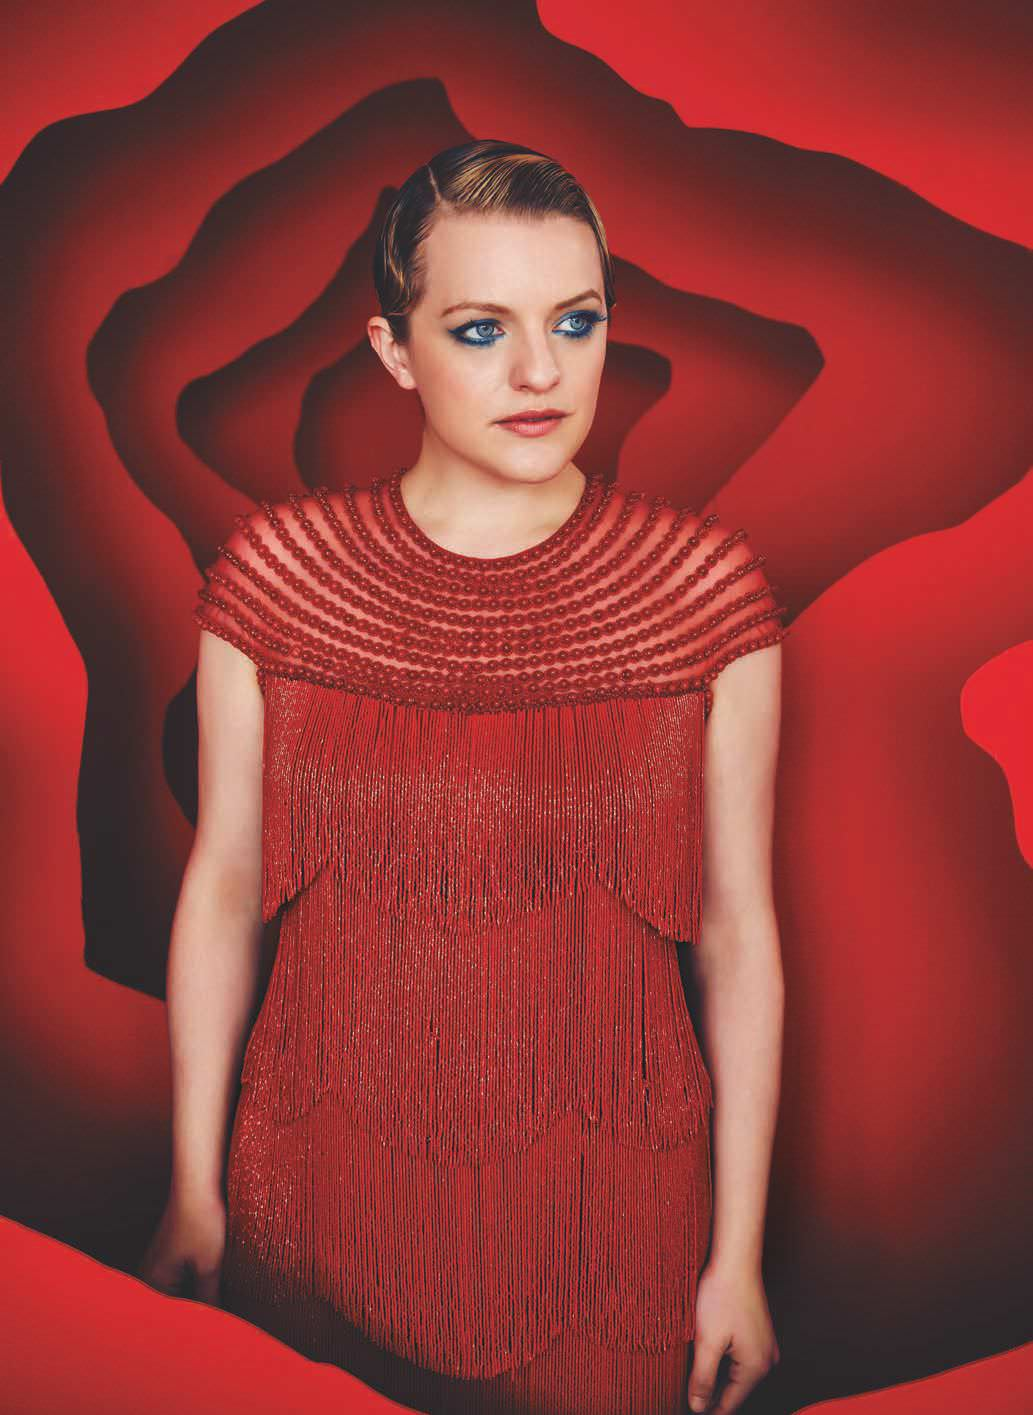 171 Minutes With Elisabeth Moss